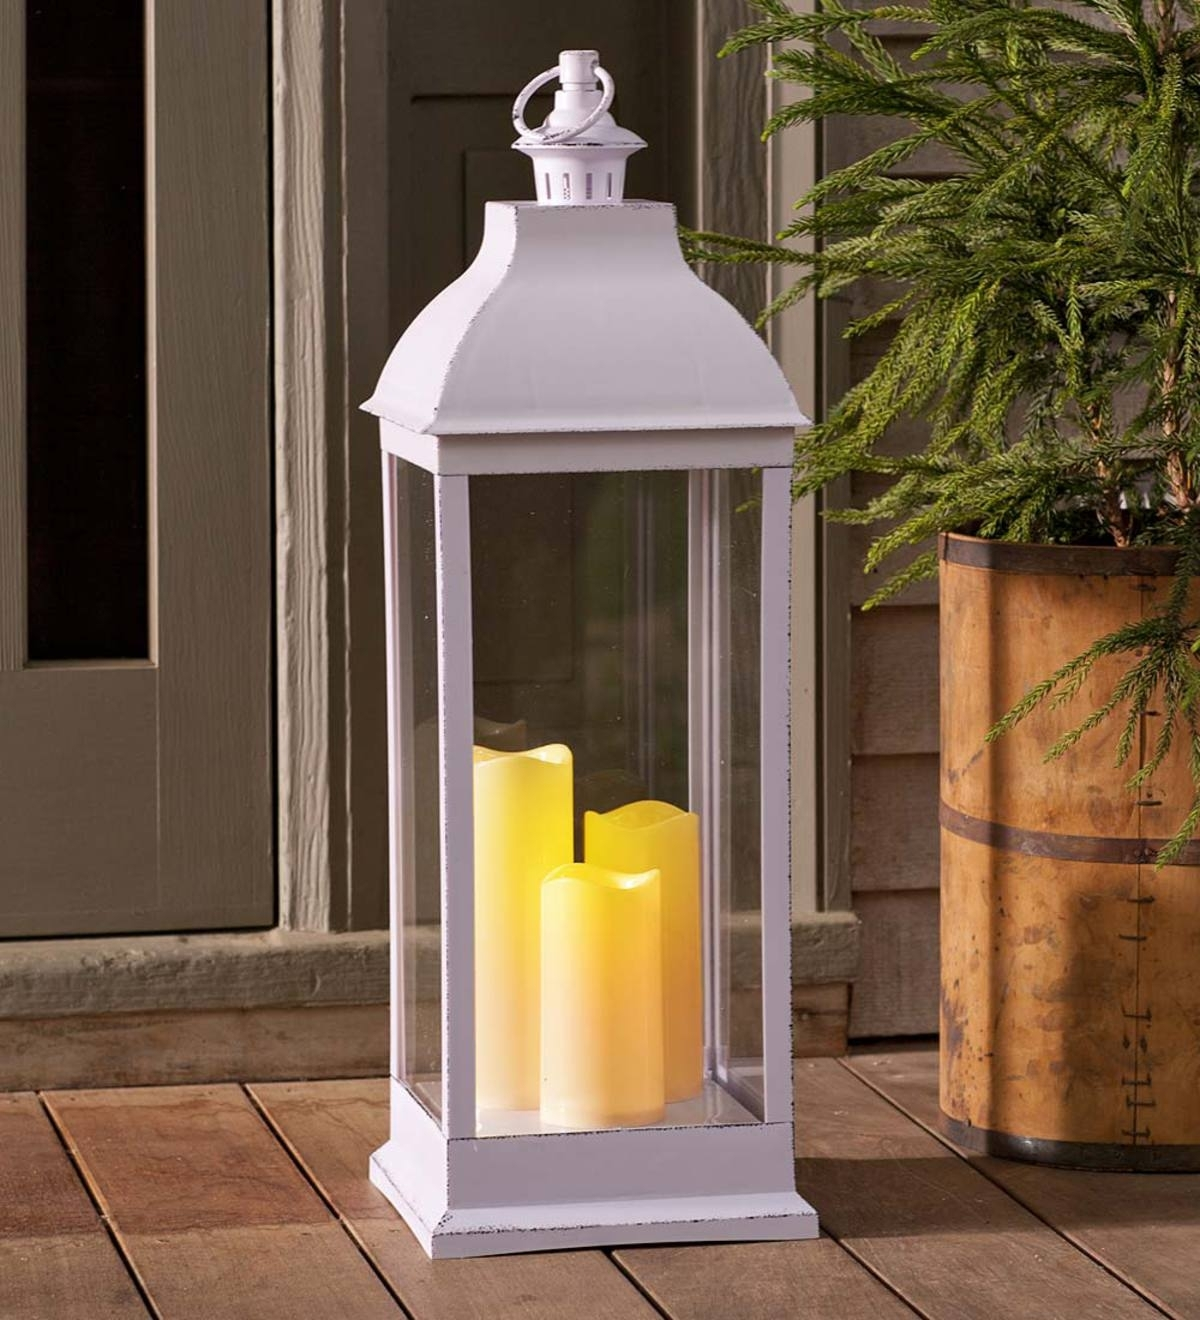 Outdoor Lantern With Led Candles | Plowhearth for Outdoor Lanterns With Flameless Candles (Image 15 of 20)